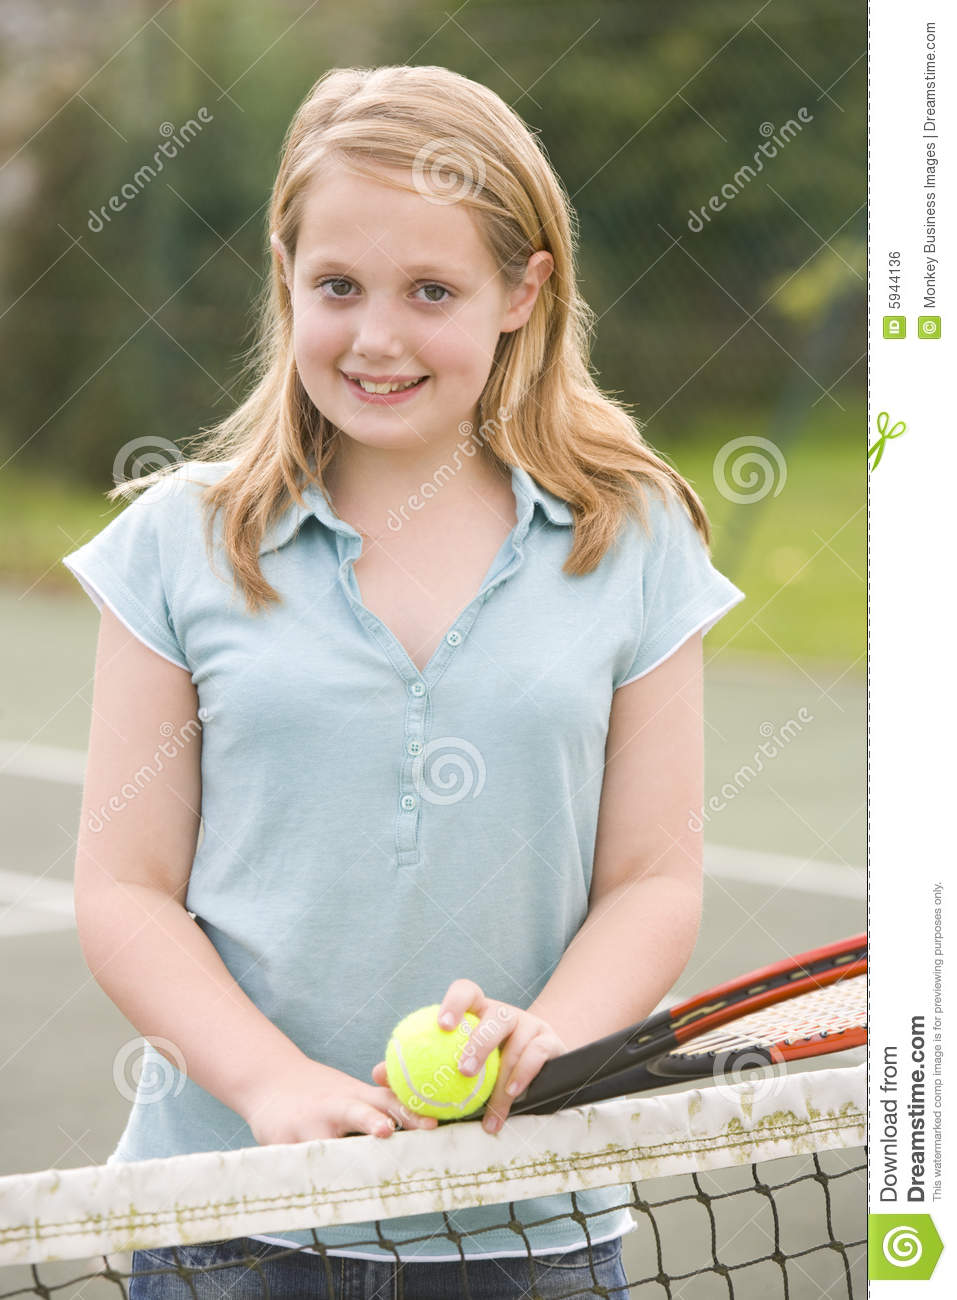 Young Girl With Racket On Tennis Court Smiling Royalty Free Stock ...